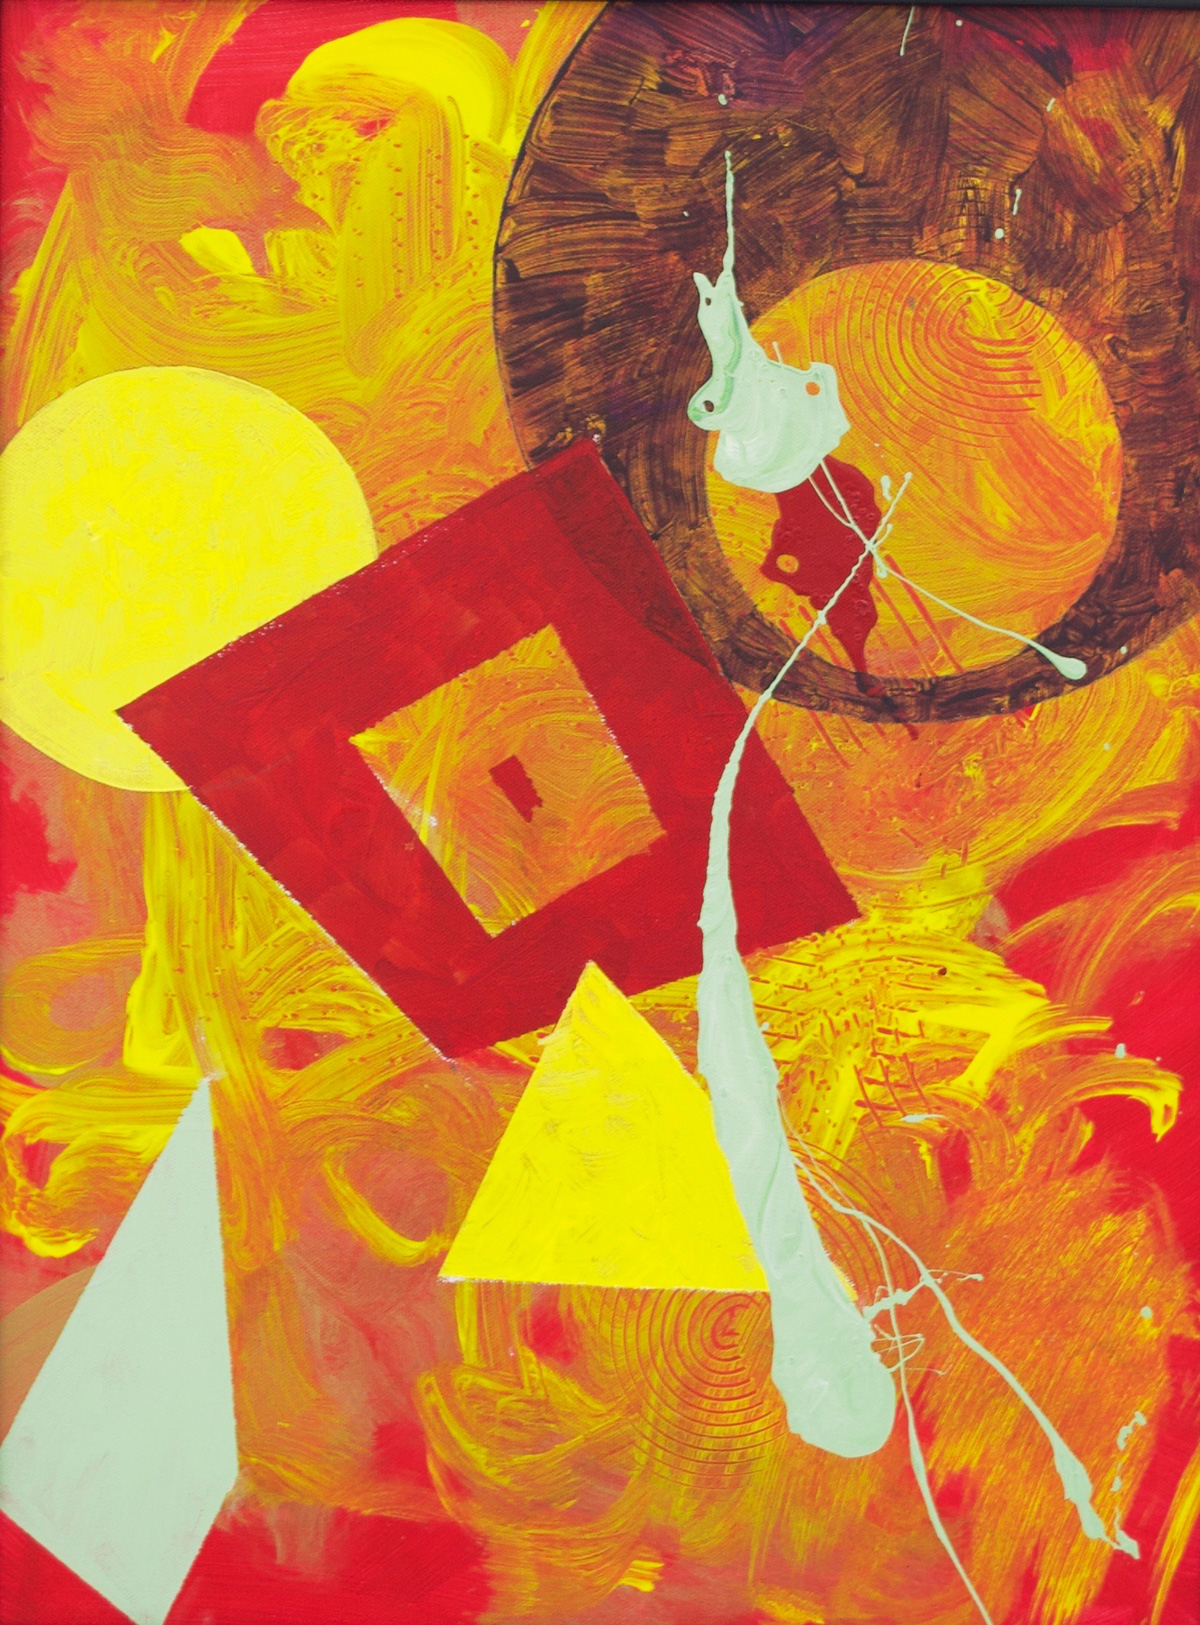 Painting: Solid red background with a thin layer of yellow, layered with red, yellow, and light green splatter on top.